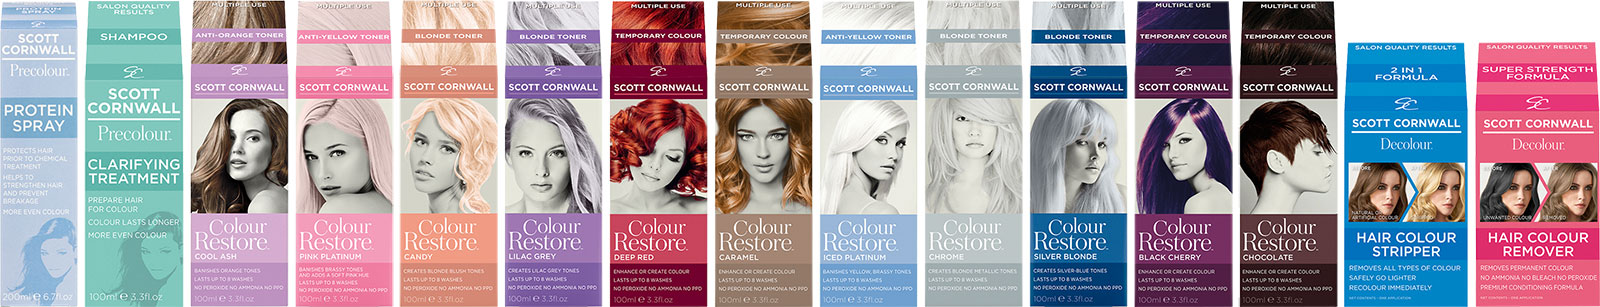 Scott Cornwall Product Range